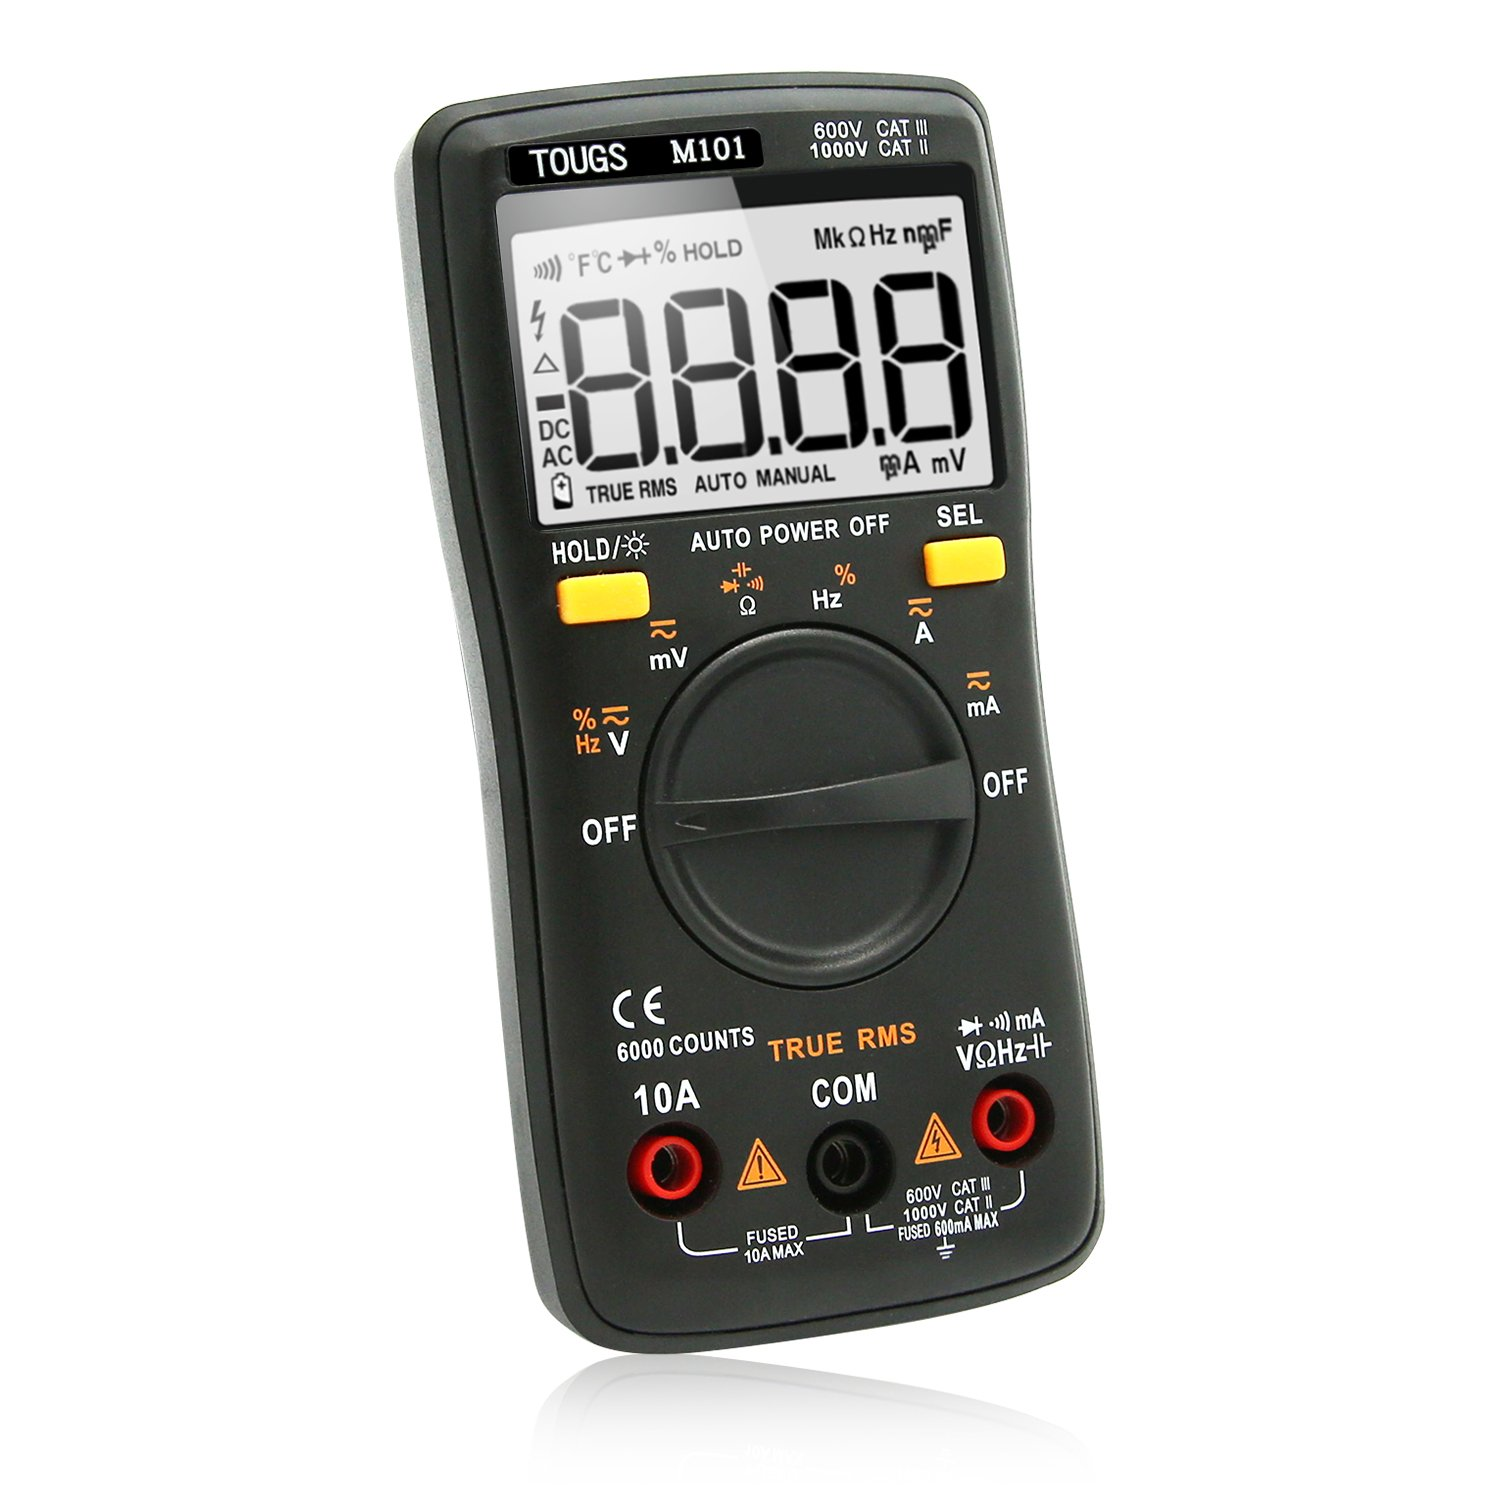 TOUGS M101 True-RMS Digital Multimeter Auto-Ranging 6000 Counts Electricians Pocket Multi Tester with LCD Backlight